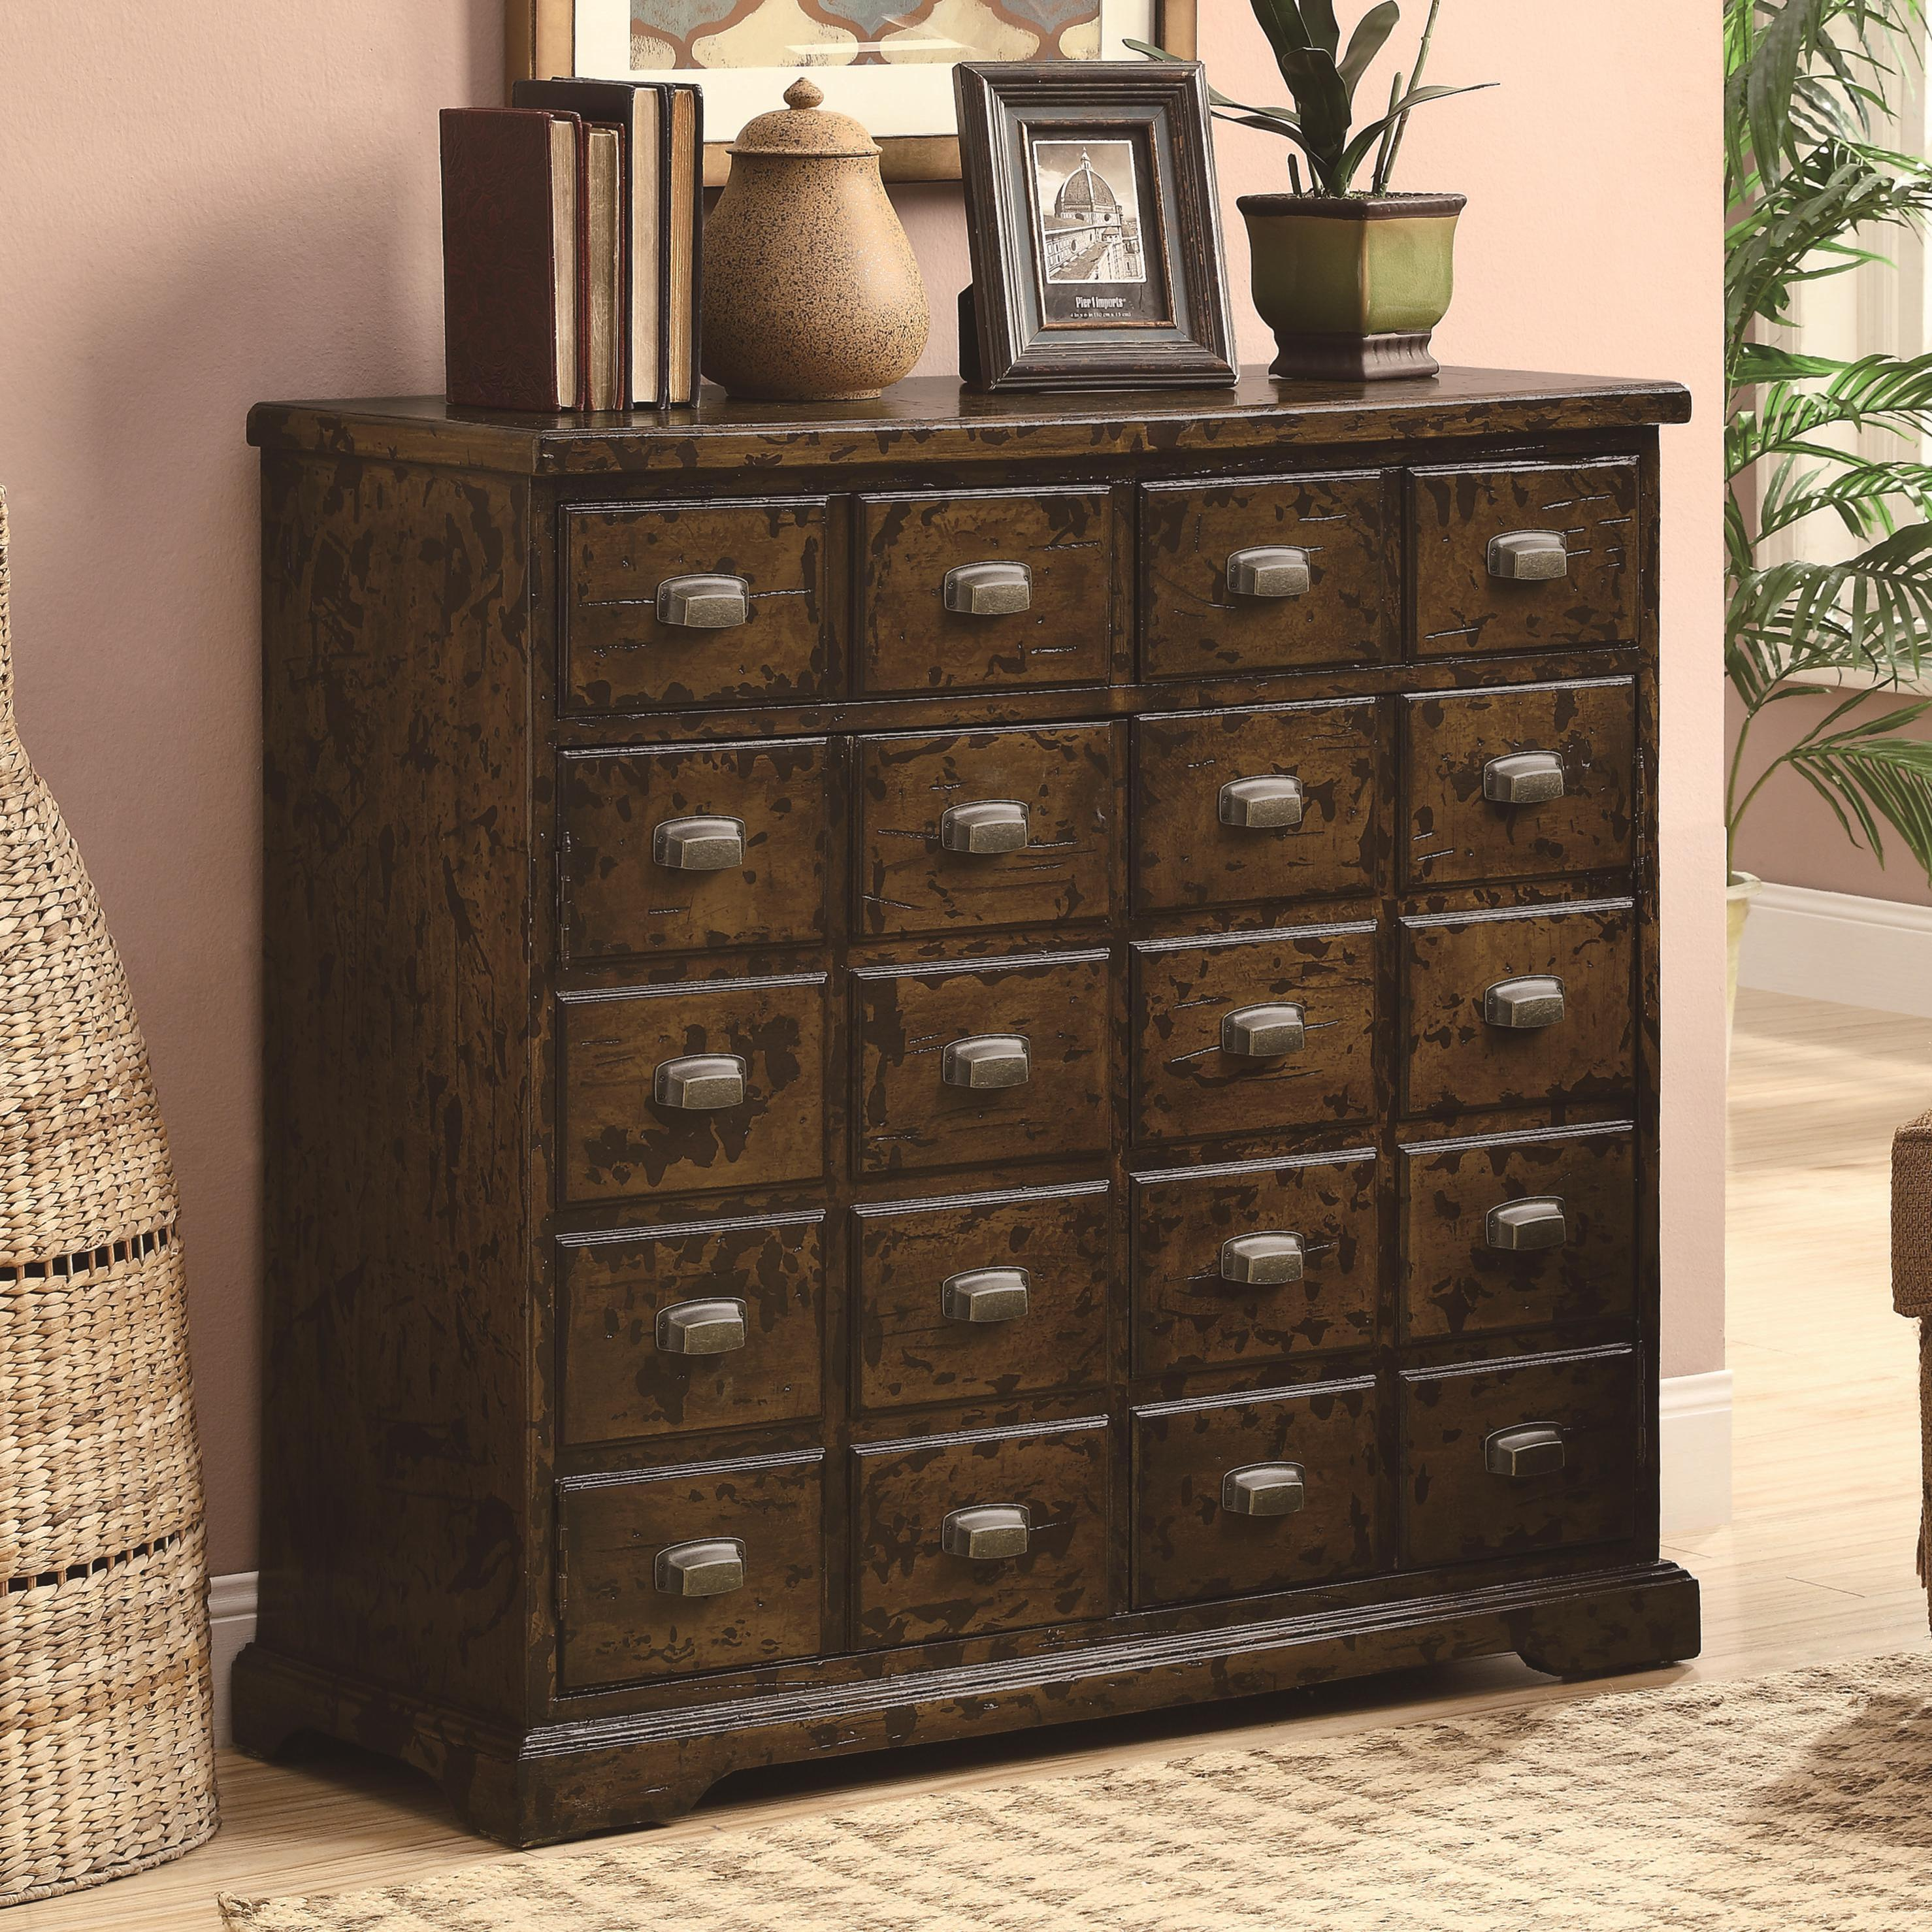 Accent Cabinets Apothecary Accent Cabinet From Coaster Beverly Hills Furniture In Jamaica New